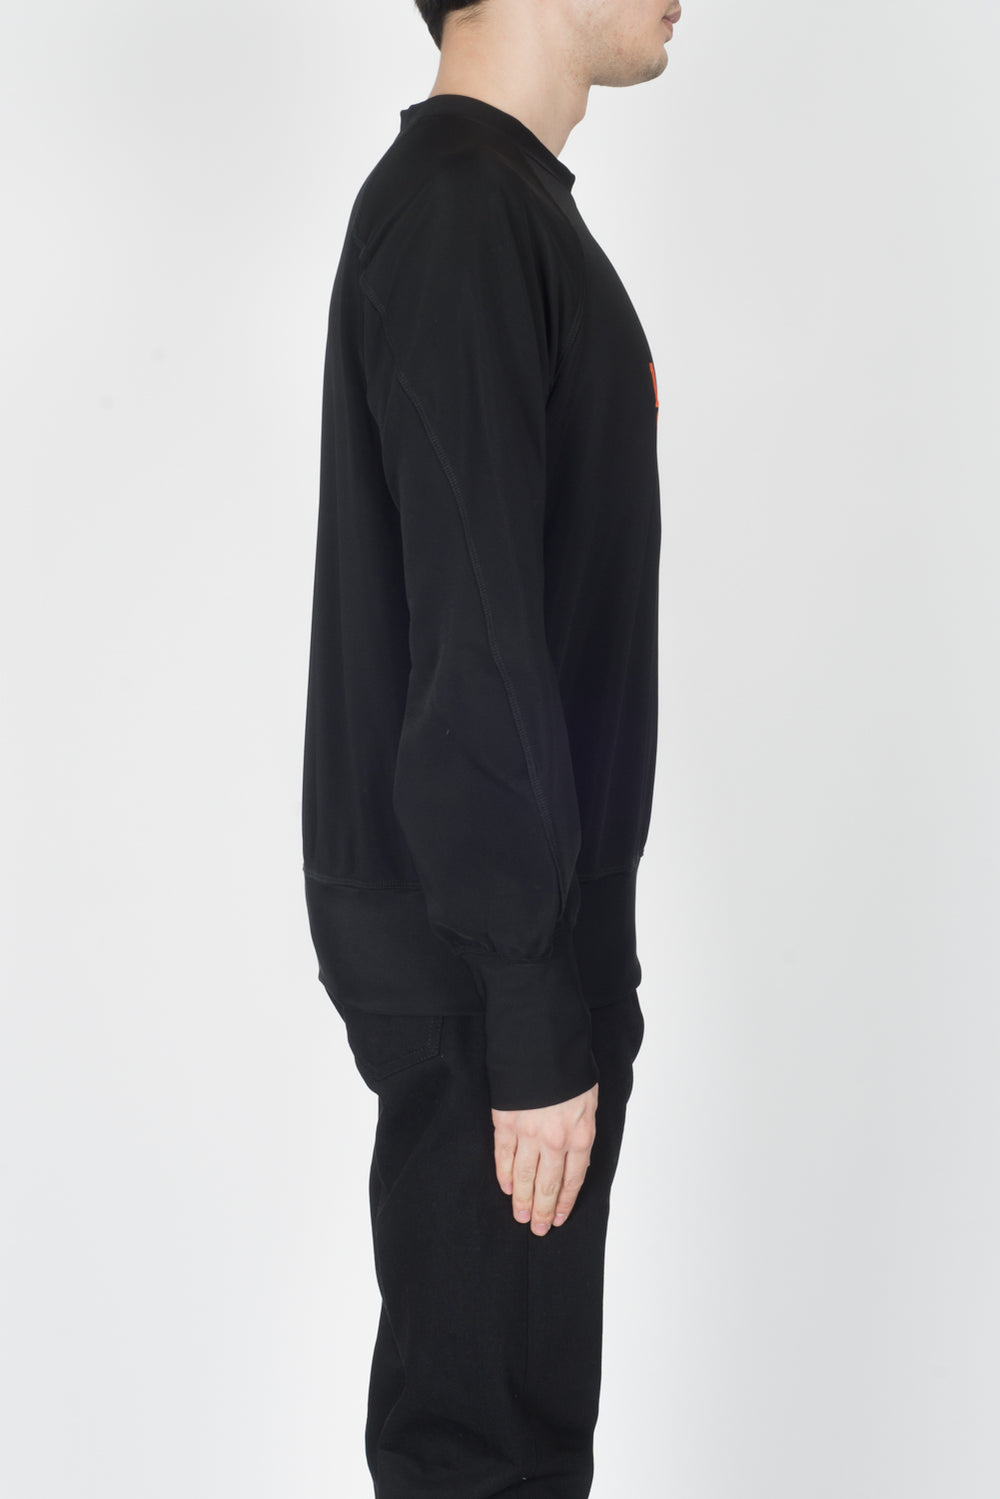 Linder Walt Jumper In Black